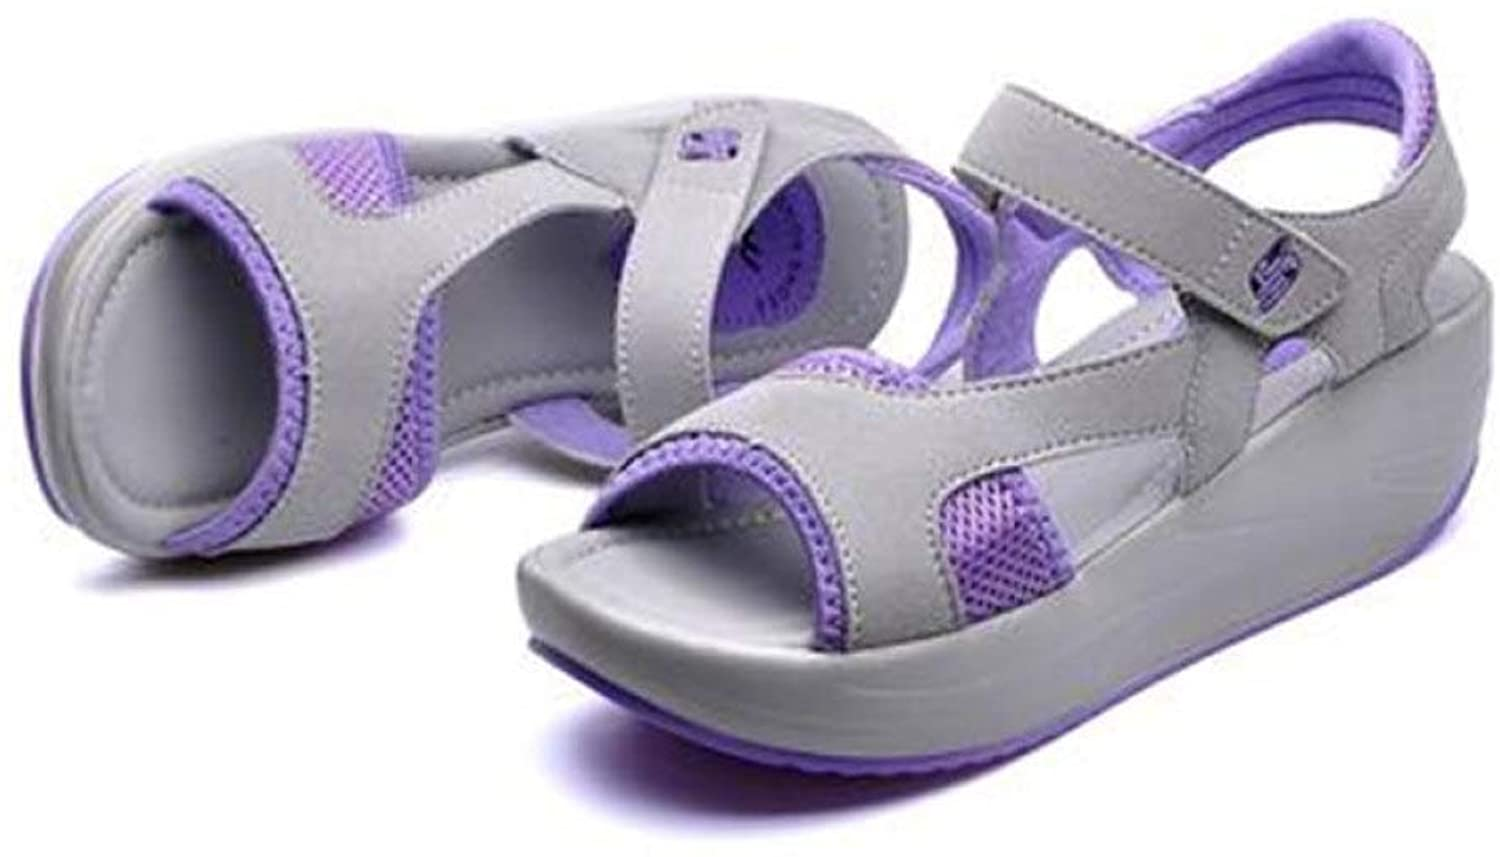 Women's Platform Mesh Sandals Casual Breathable Ladies Wedges Fashion Summer Peep Toed shoes